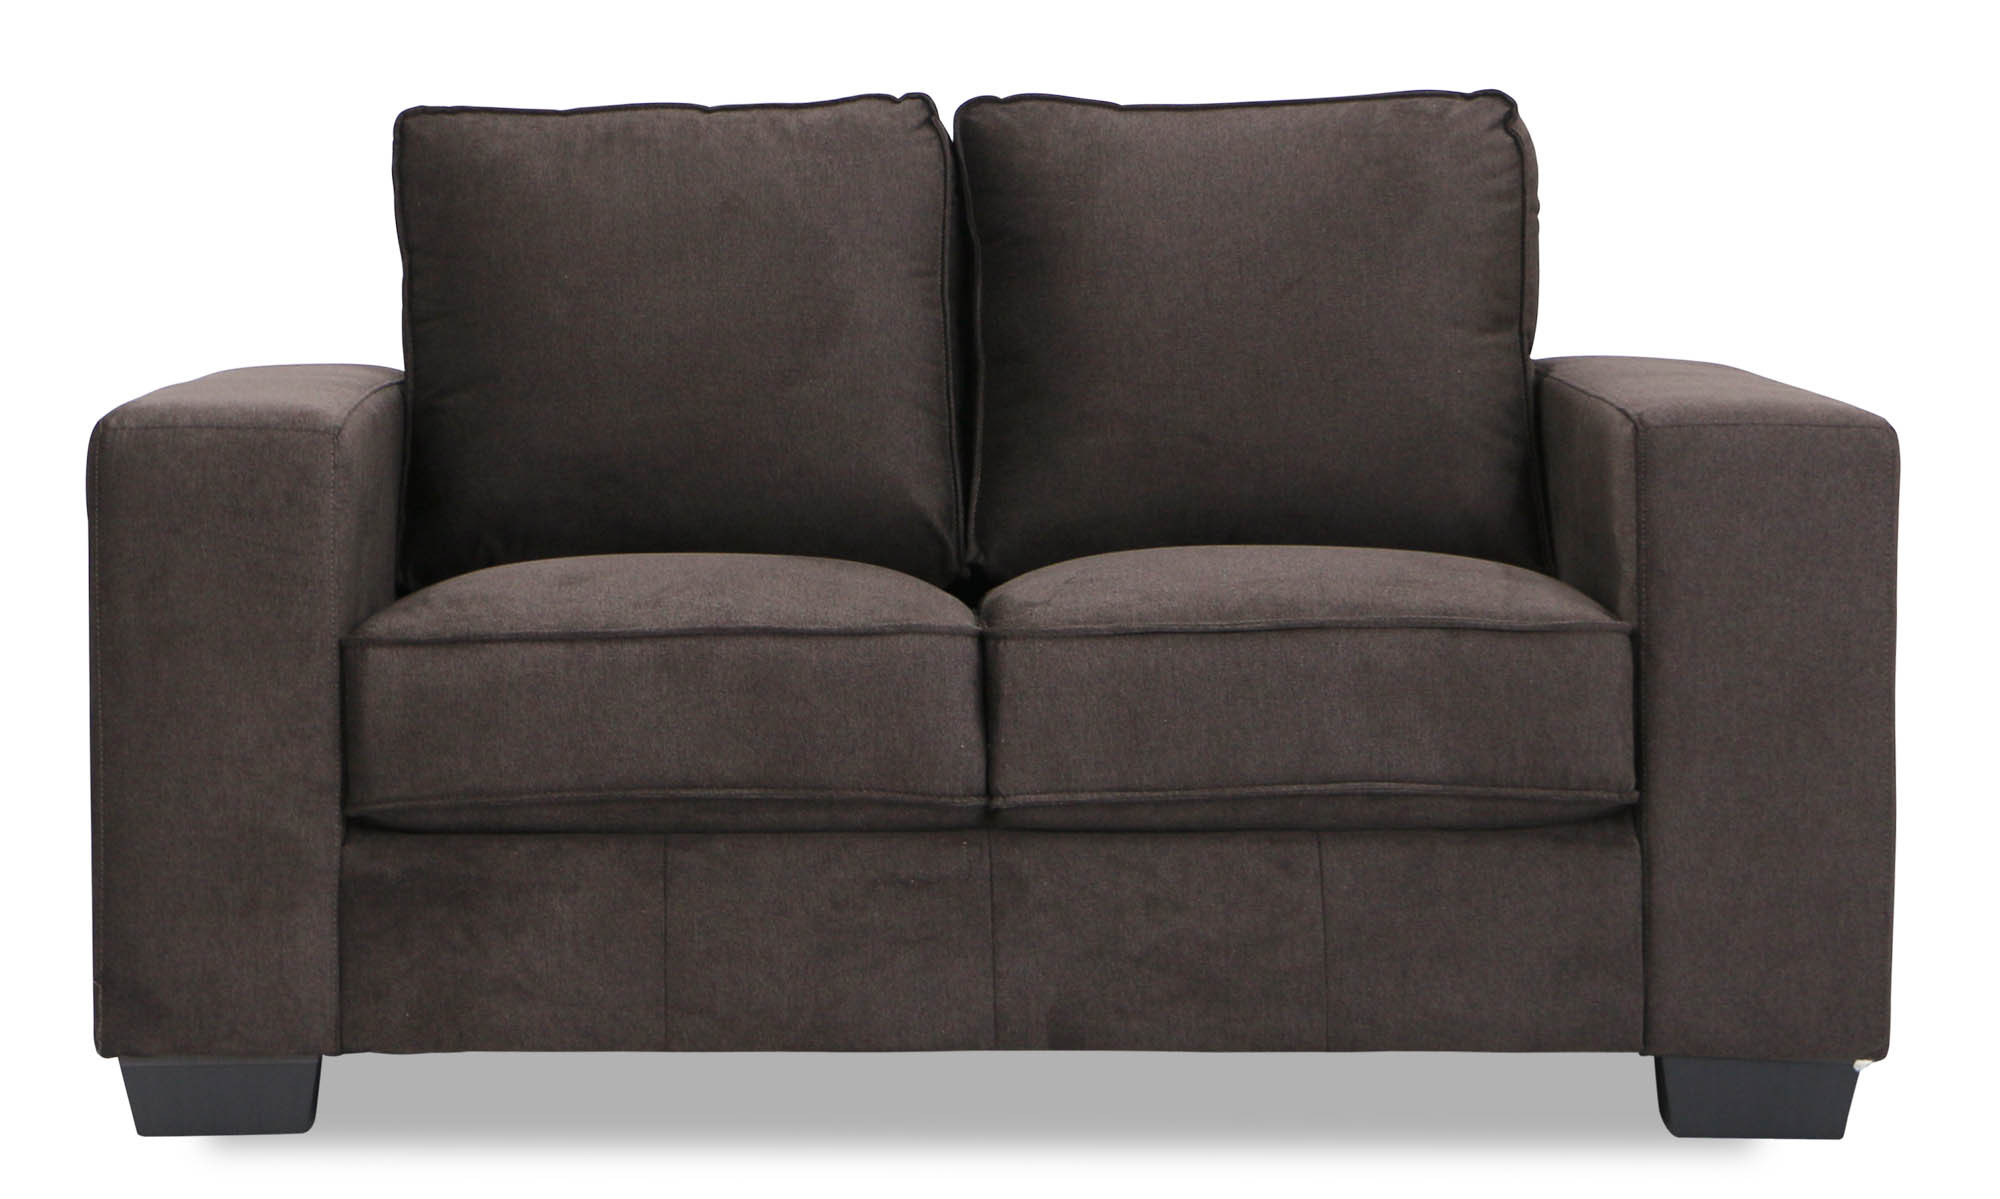 2 seater brown sofa faux leather corner uk verona dark furniture and home décor